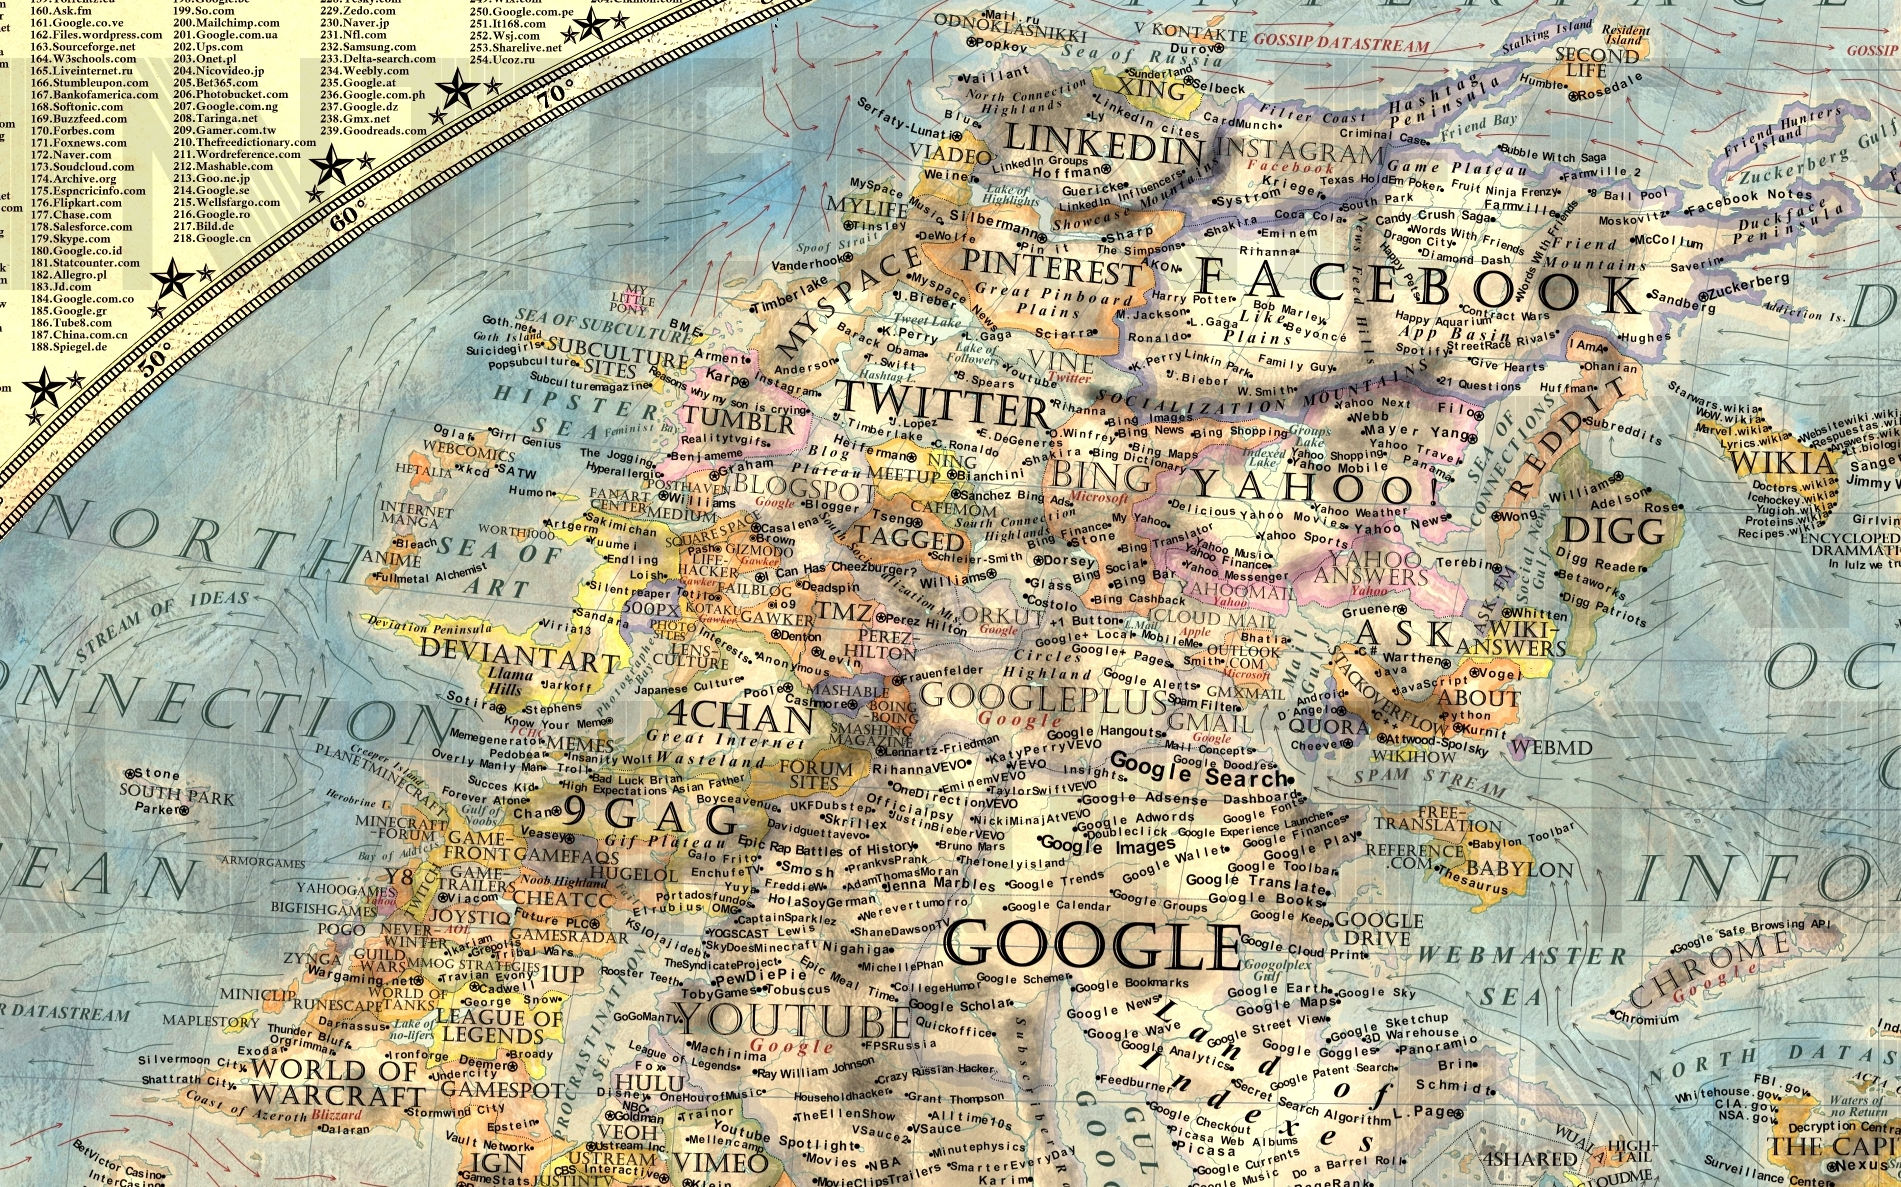 Map of the Internet 2